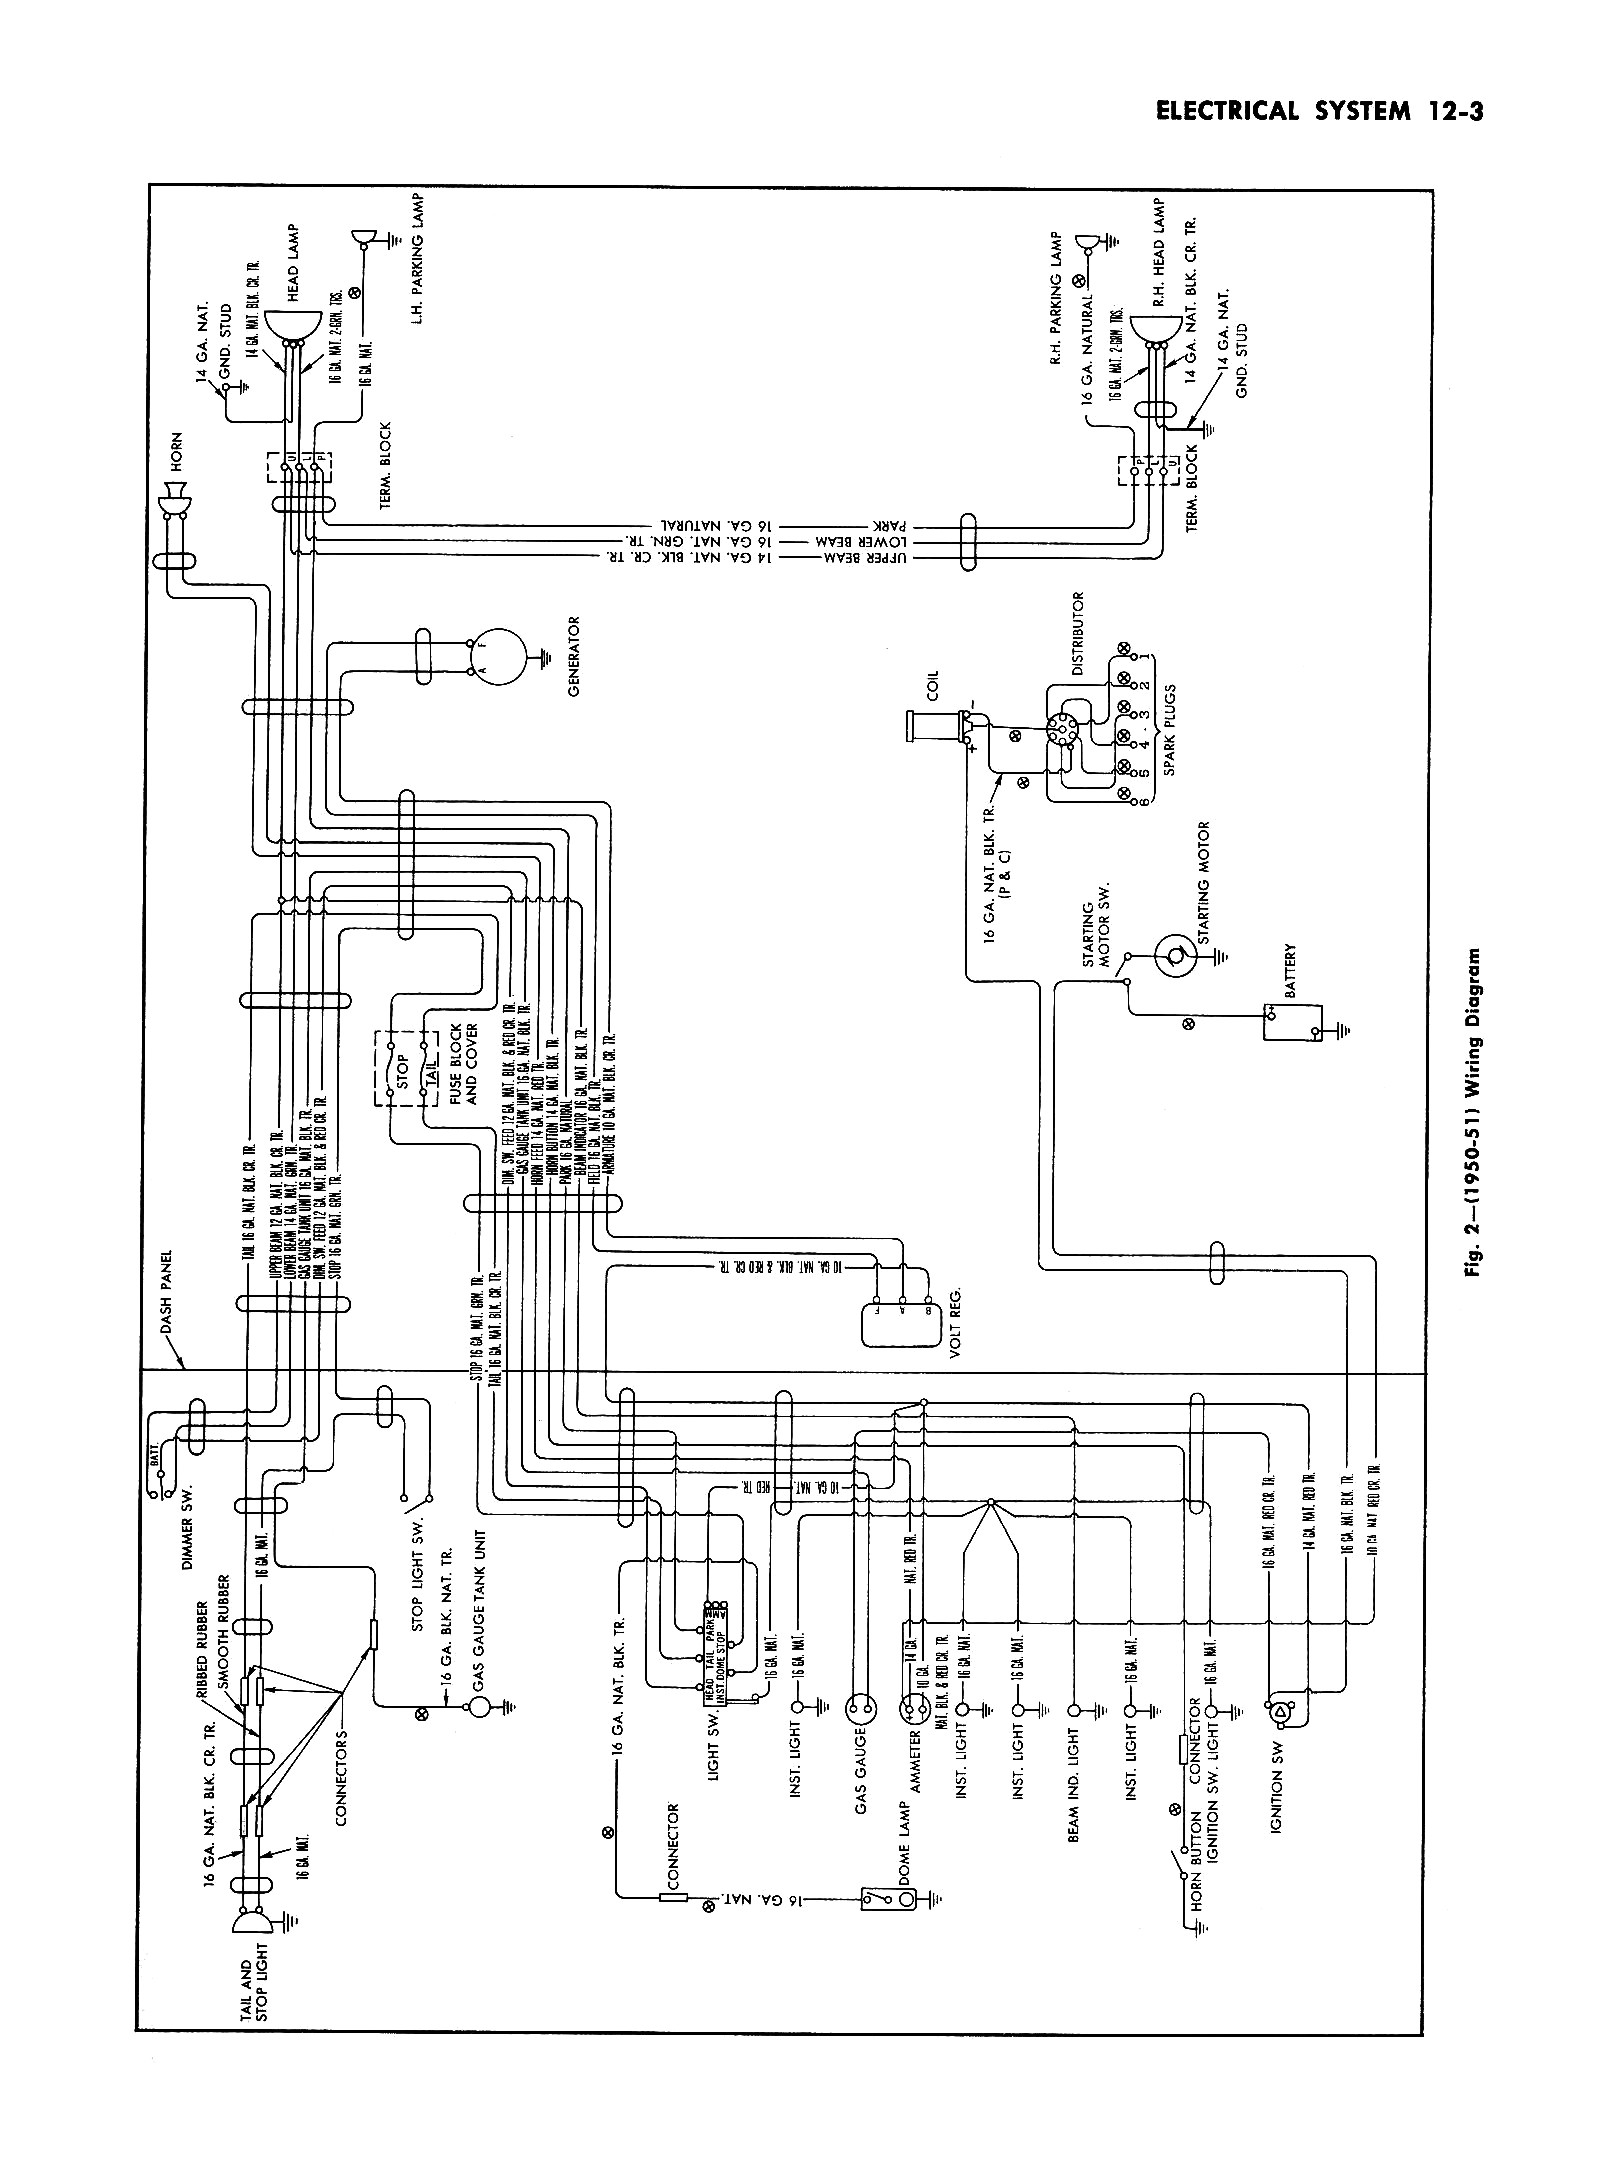 1950 chevy wiring diagram wiring diagram